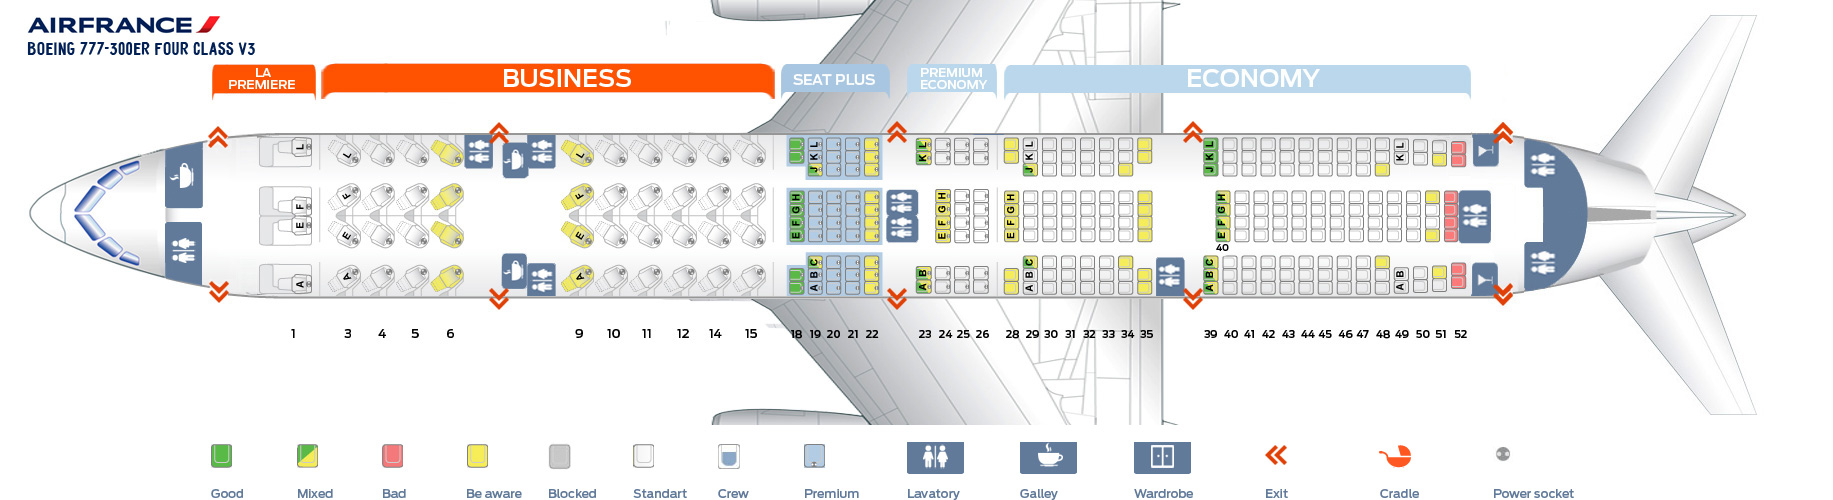 Seat Map Boeing 777-300 ER Four Class V3 Air France